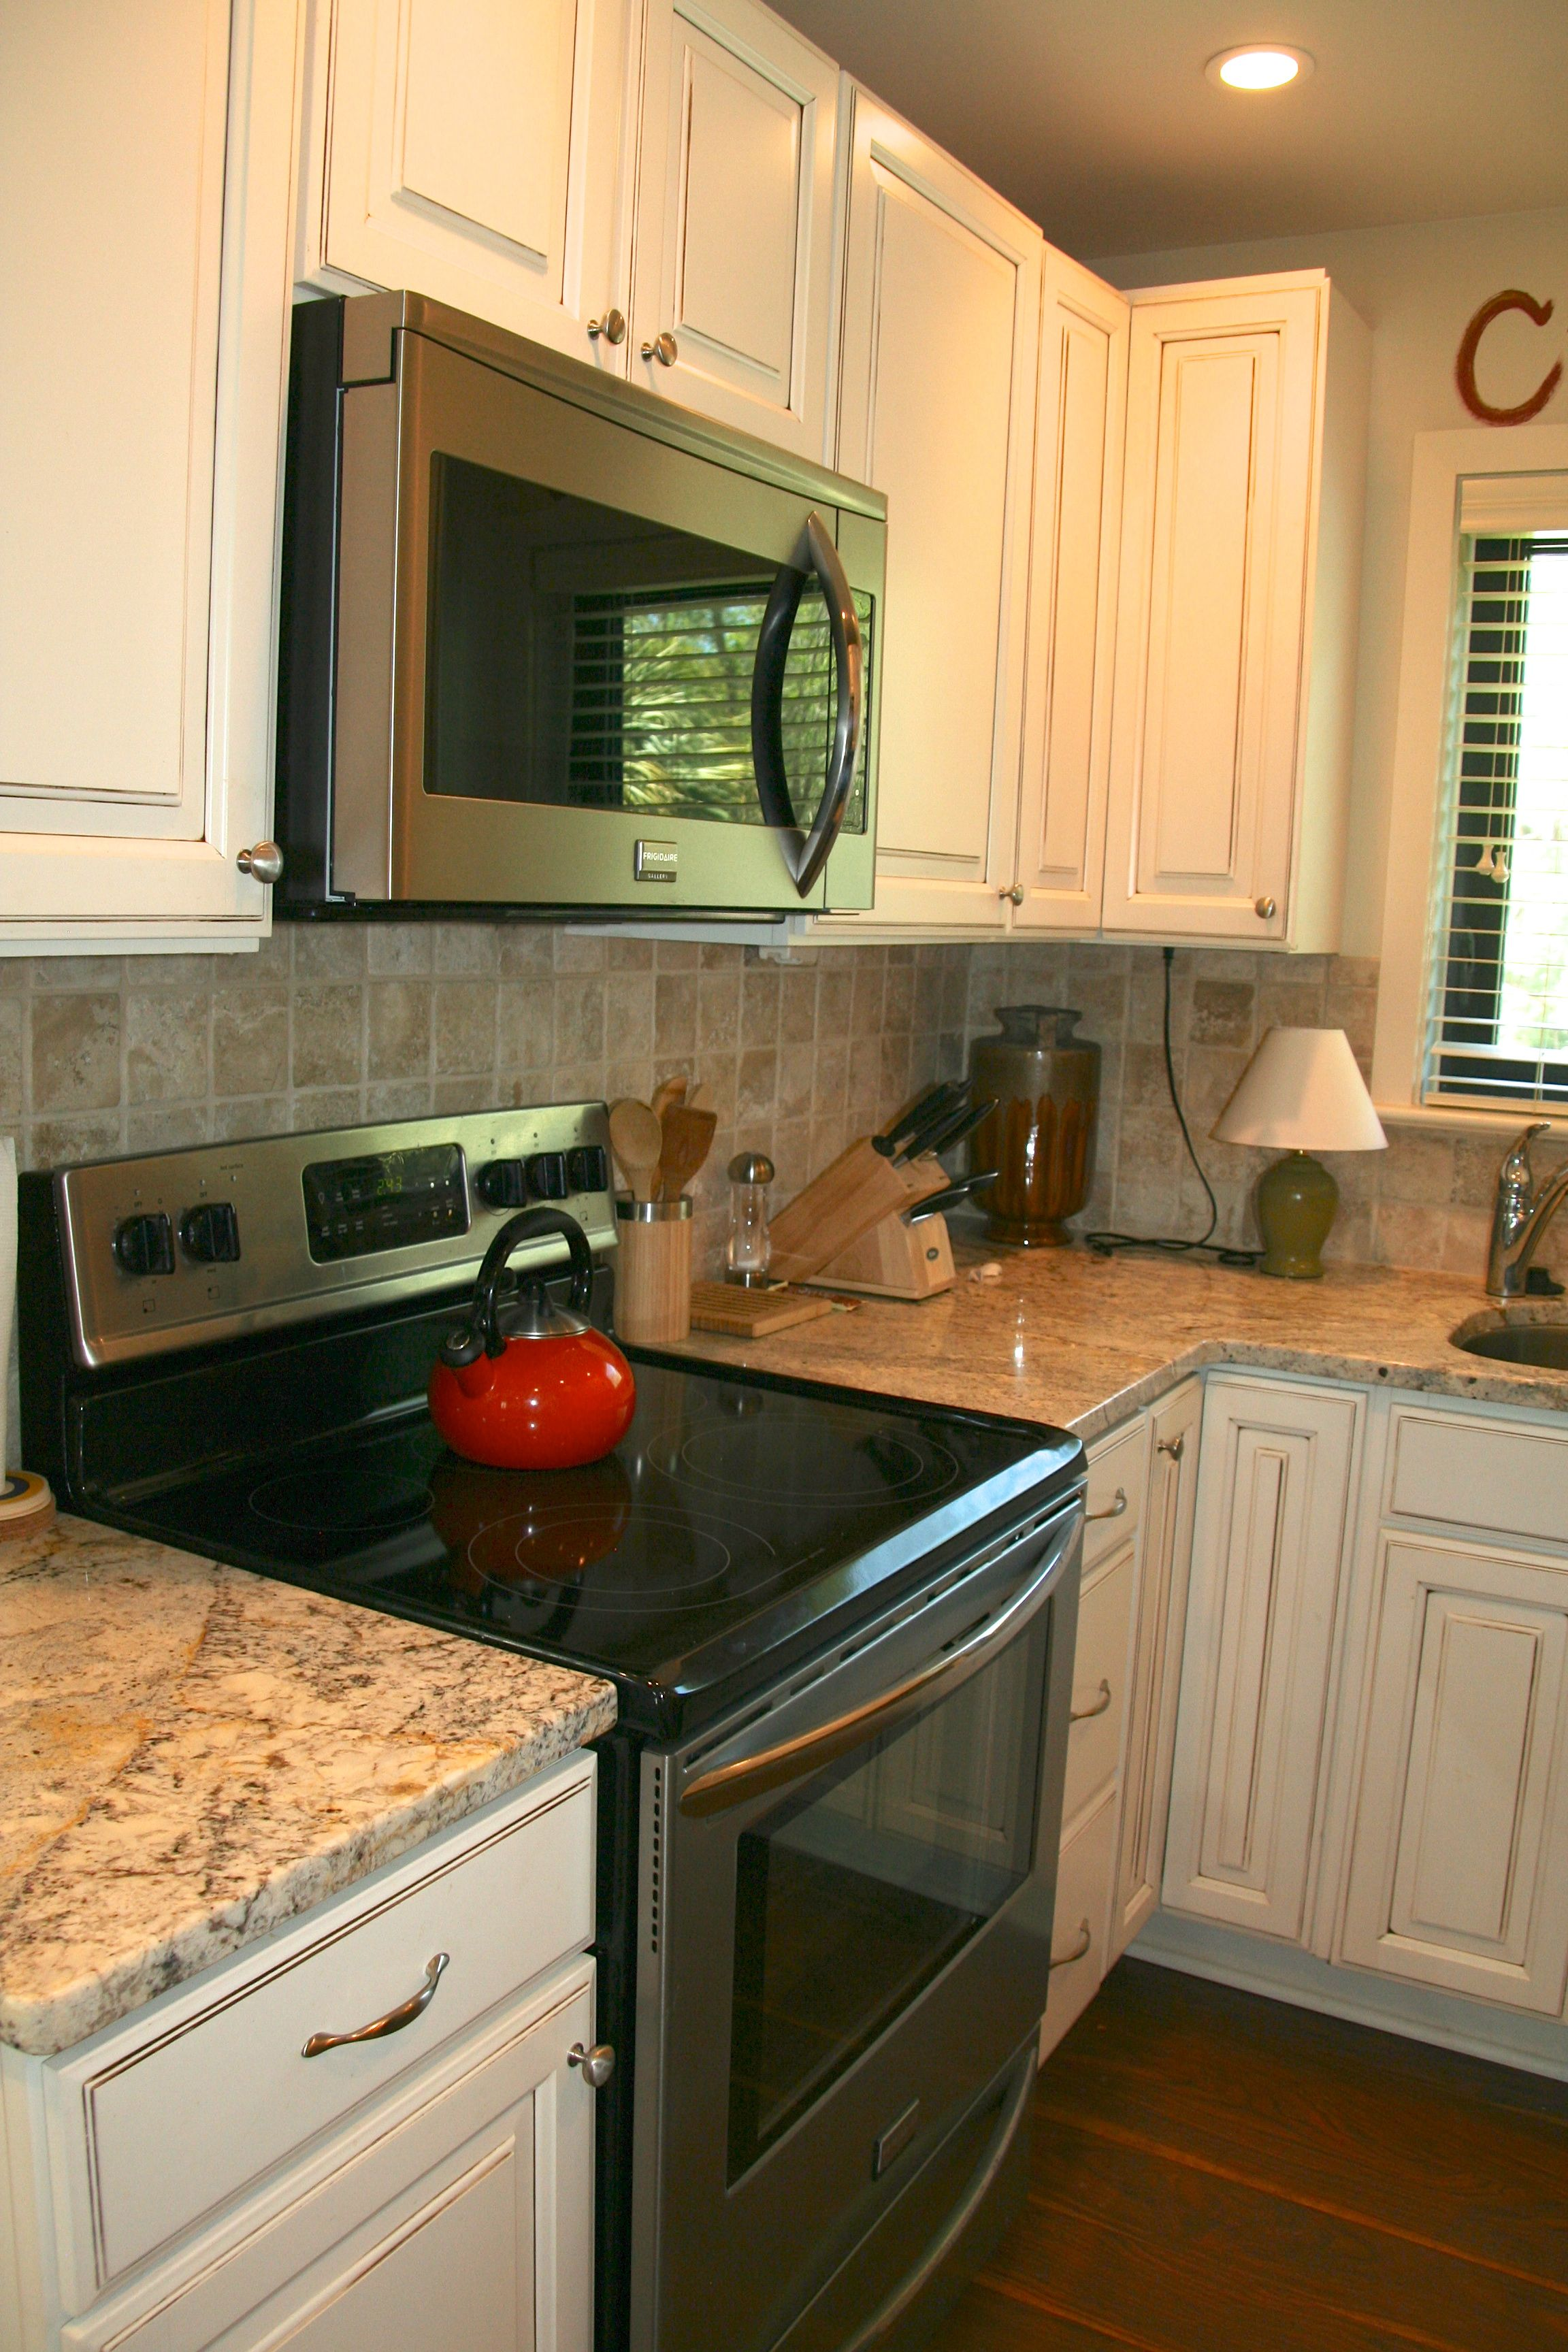 The updated kitchen boasts granite counters & stainless appliances.